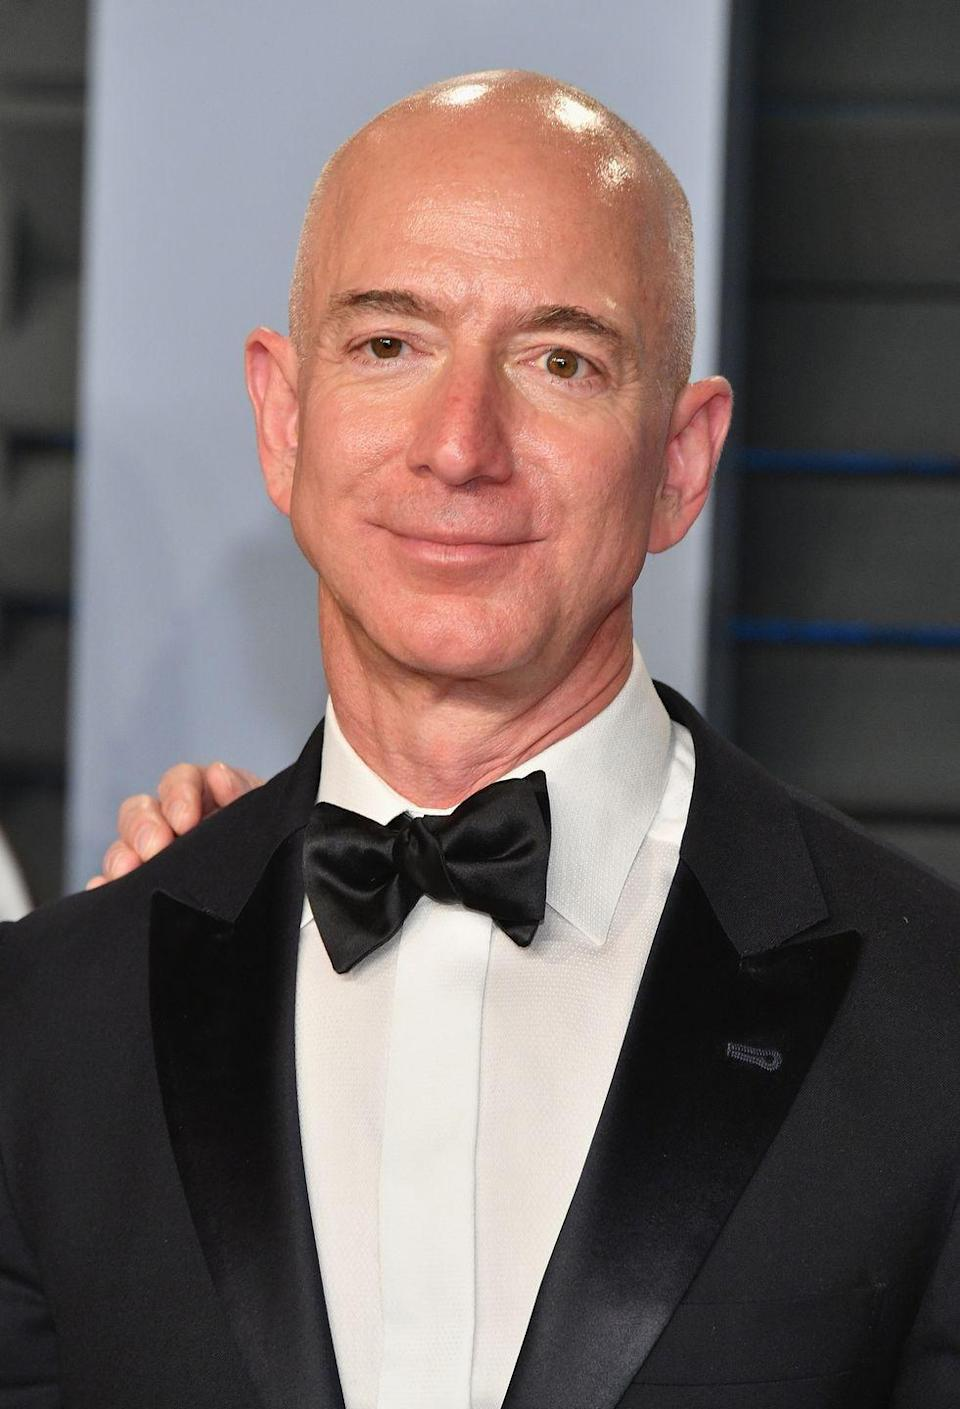 """<p>Before he was one of the <a href=""""https://www.cbsnews.com/pictures/richest-people-in-world-forbes/21/"""" rel=""""nofollow noopener"""" target=""""_blank"""" data-ylk=""""slk:world's richest men"""" class=""""link rapid-noclick-resp"""">world's richest men</a>, Bezos worked at McDonald's. In an interview <a href=""""http://goldenopportunitybook.com/jeffrey-p-bezos/"""" rel=""""nofollow noopener"""" target=""""_blank"""" data-ylk=""""slk:with Teets"""" class=""""link rapid-noclick-resp"""">with Teets</a> for <a href=""""https://www.amazon.com/Golden-Opportunity-Remarkable-Careers-McDonalds/dp/1604332794?tag=syn-yahoo-20&ascsubtag=%5Bartid%7C10063.g.36700579%5Bsrc%7Cyahoo-us"""" rel=""""nofollow noopener"""" target=""""_blank"""" data-ylk=""""slk:Golden Opportunity: Remarkable Careers That Began at McDonald's"""" class=""""link rapid-noclick-resp""""><em>Golden Opportunity: Remarkable Careers That Began at McDonald's</em></a>, he said that the Saturday morning shift was his favorite: """"I would get a big bowl and crack 300 eggs in it,"""" he recalled.</p>"""